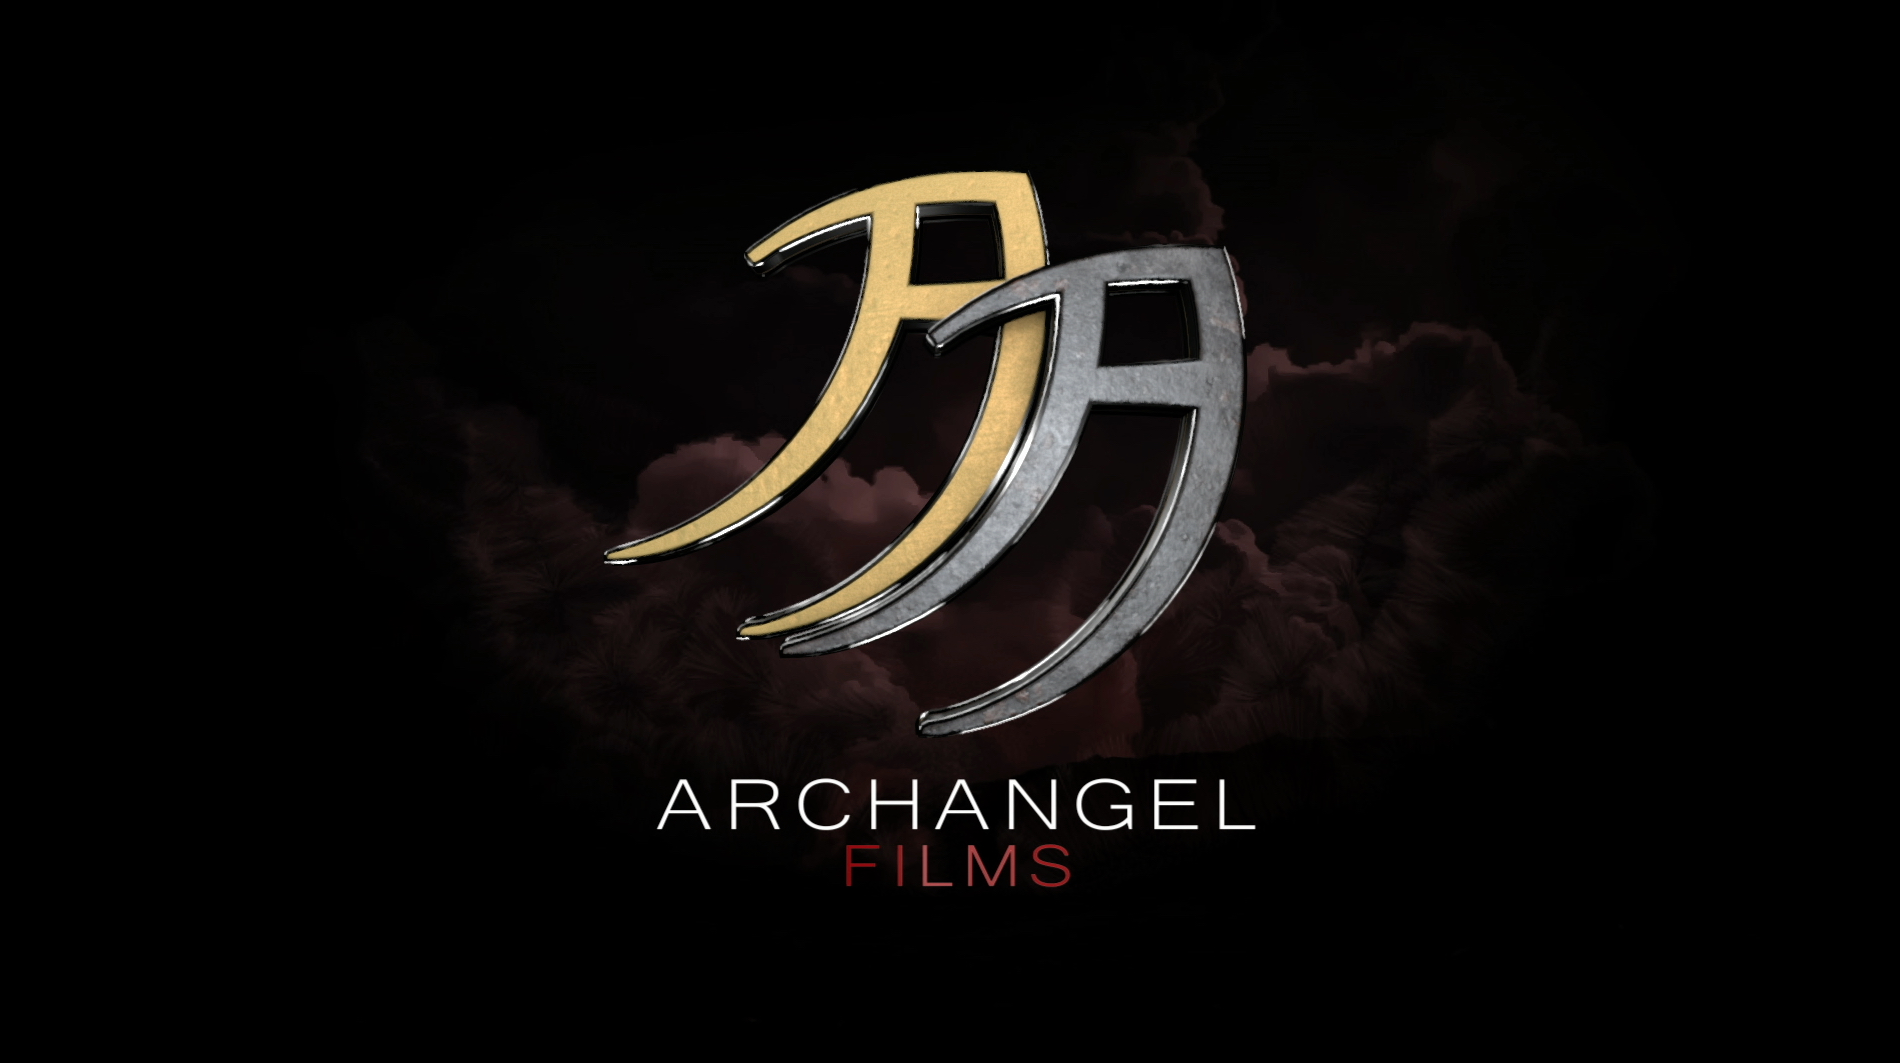 ARCHANGEL FILMS_LOGO